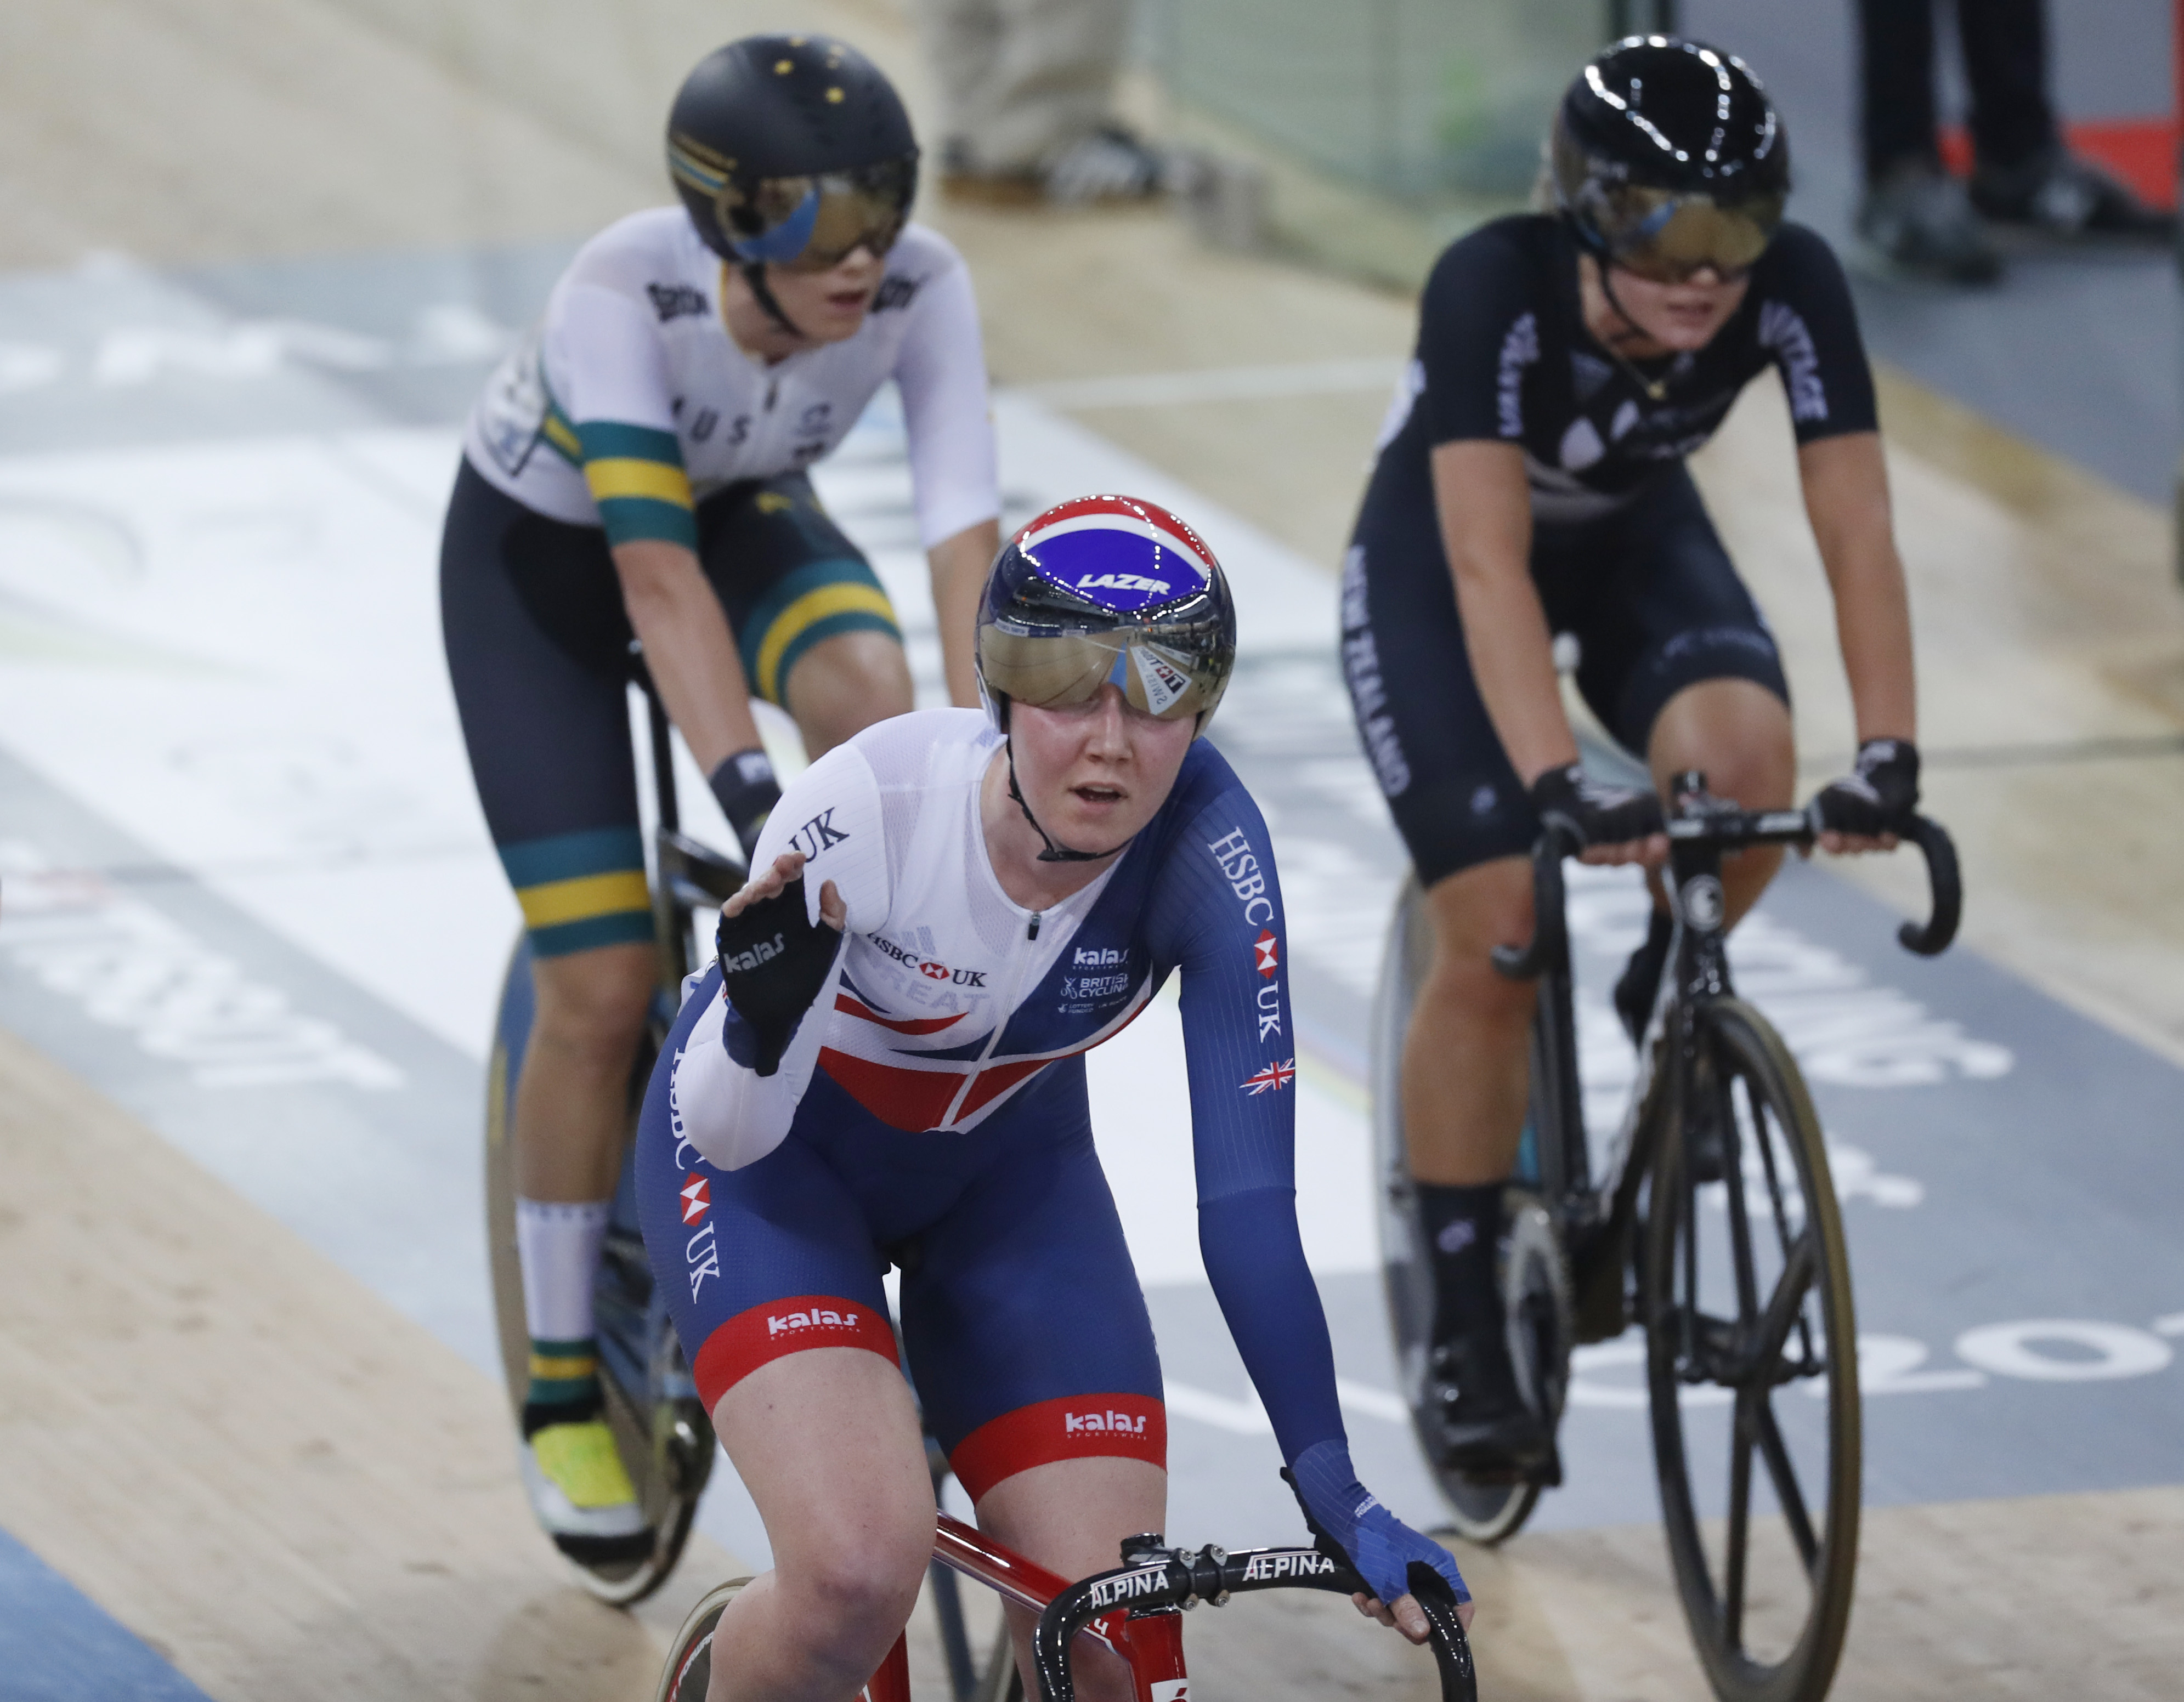 Britain's Katie Archibald, center, reacts after she finished the Women's Omnium Tempo Race 2\4 at the World Track Cycling championships in Hong Kong, Friday, April 14, 2017. (AP Photo/Kin Cheung)